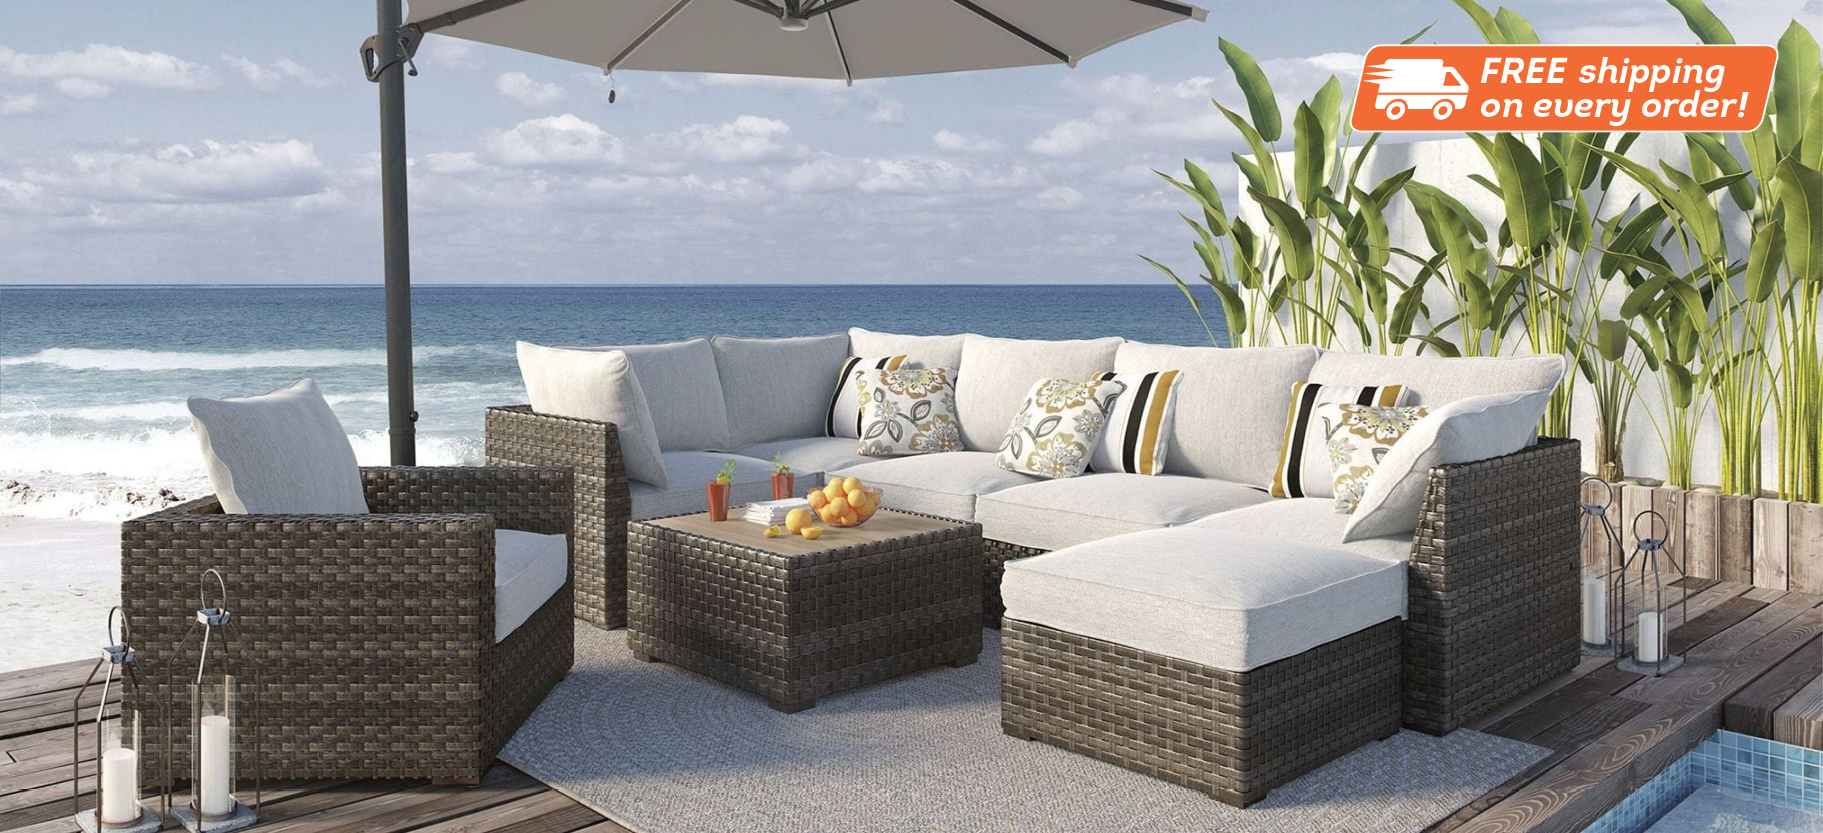 Phenomenal Patio Furniture Coleman Furniture Bralicious Painted Fabric Chair Ideas Braliciousco